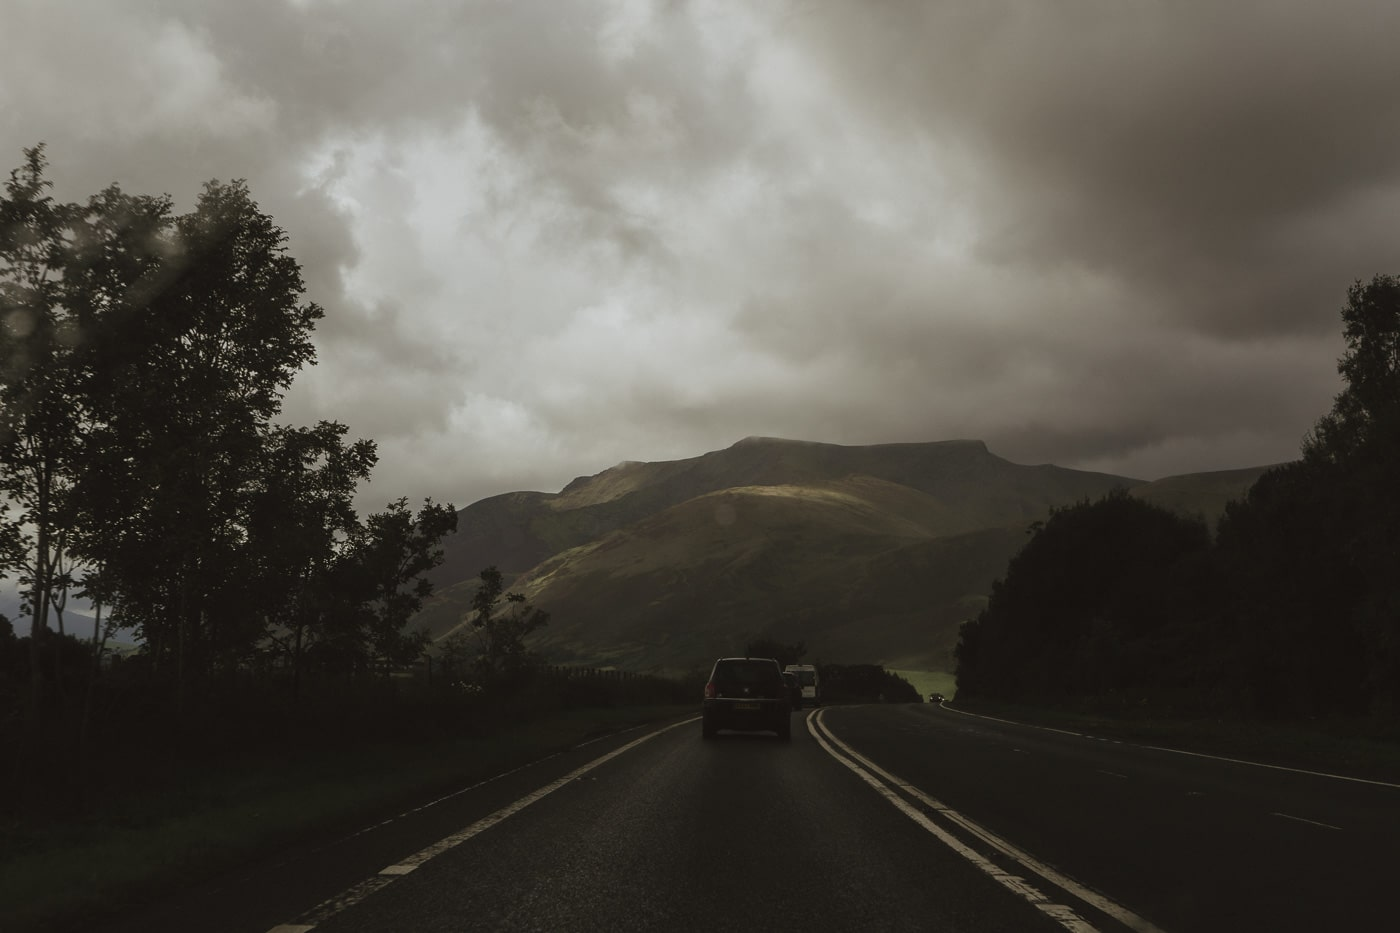 Driving into the mountains and clouds by Joshua Wyborn